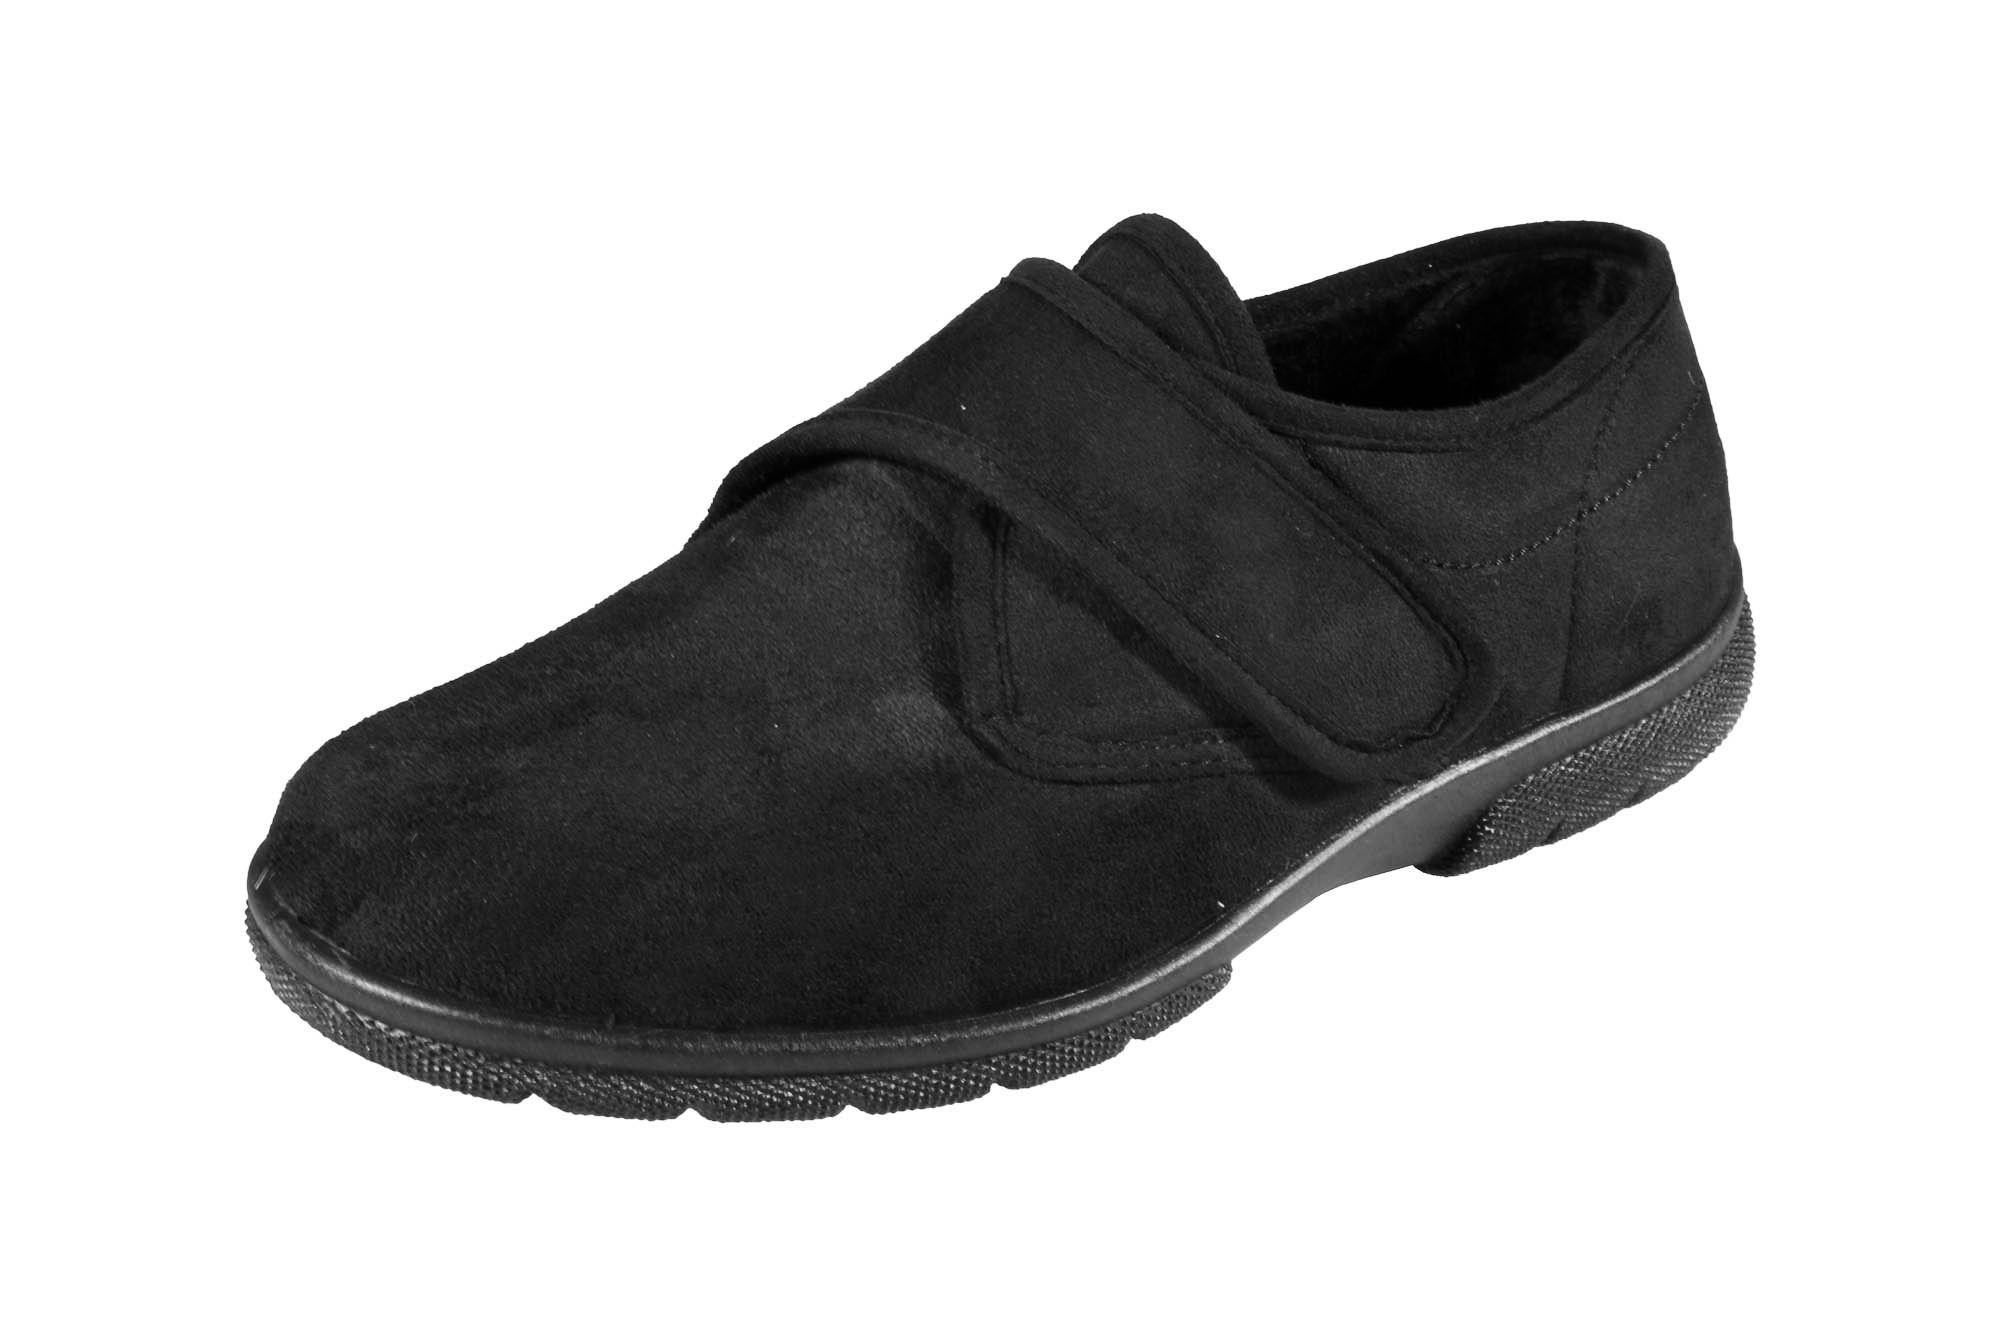 6E New Men/'s Wide Fit DB Shoes Daniel Soft Uppers Velour Slippers Width 4E